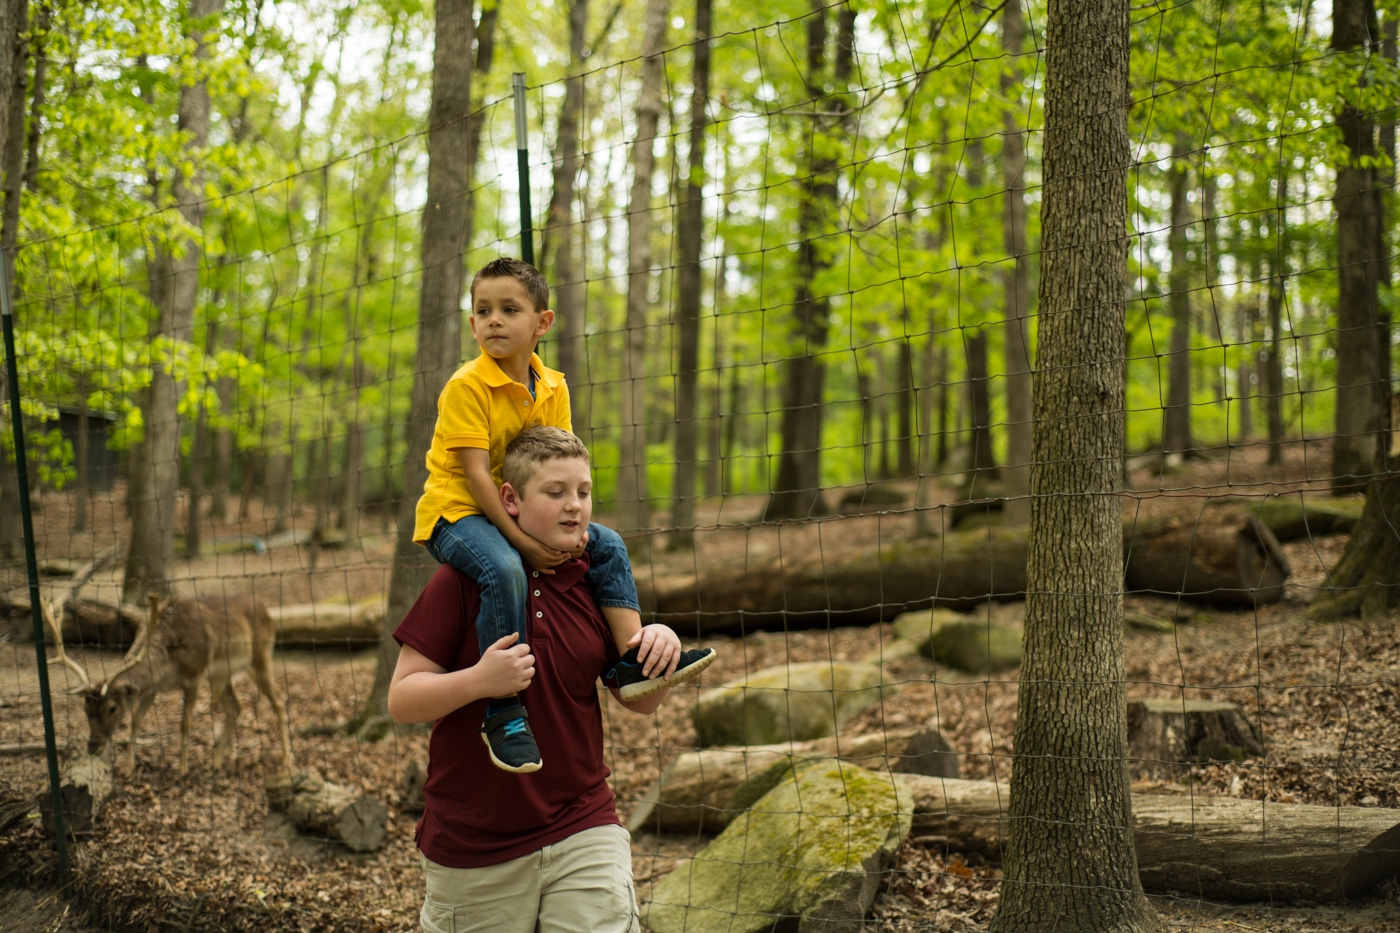 brother carries younger brother on shoulder through wildlife preserve